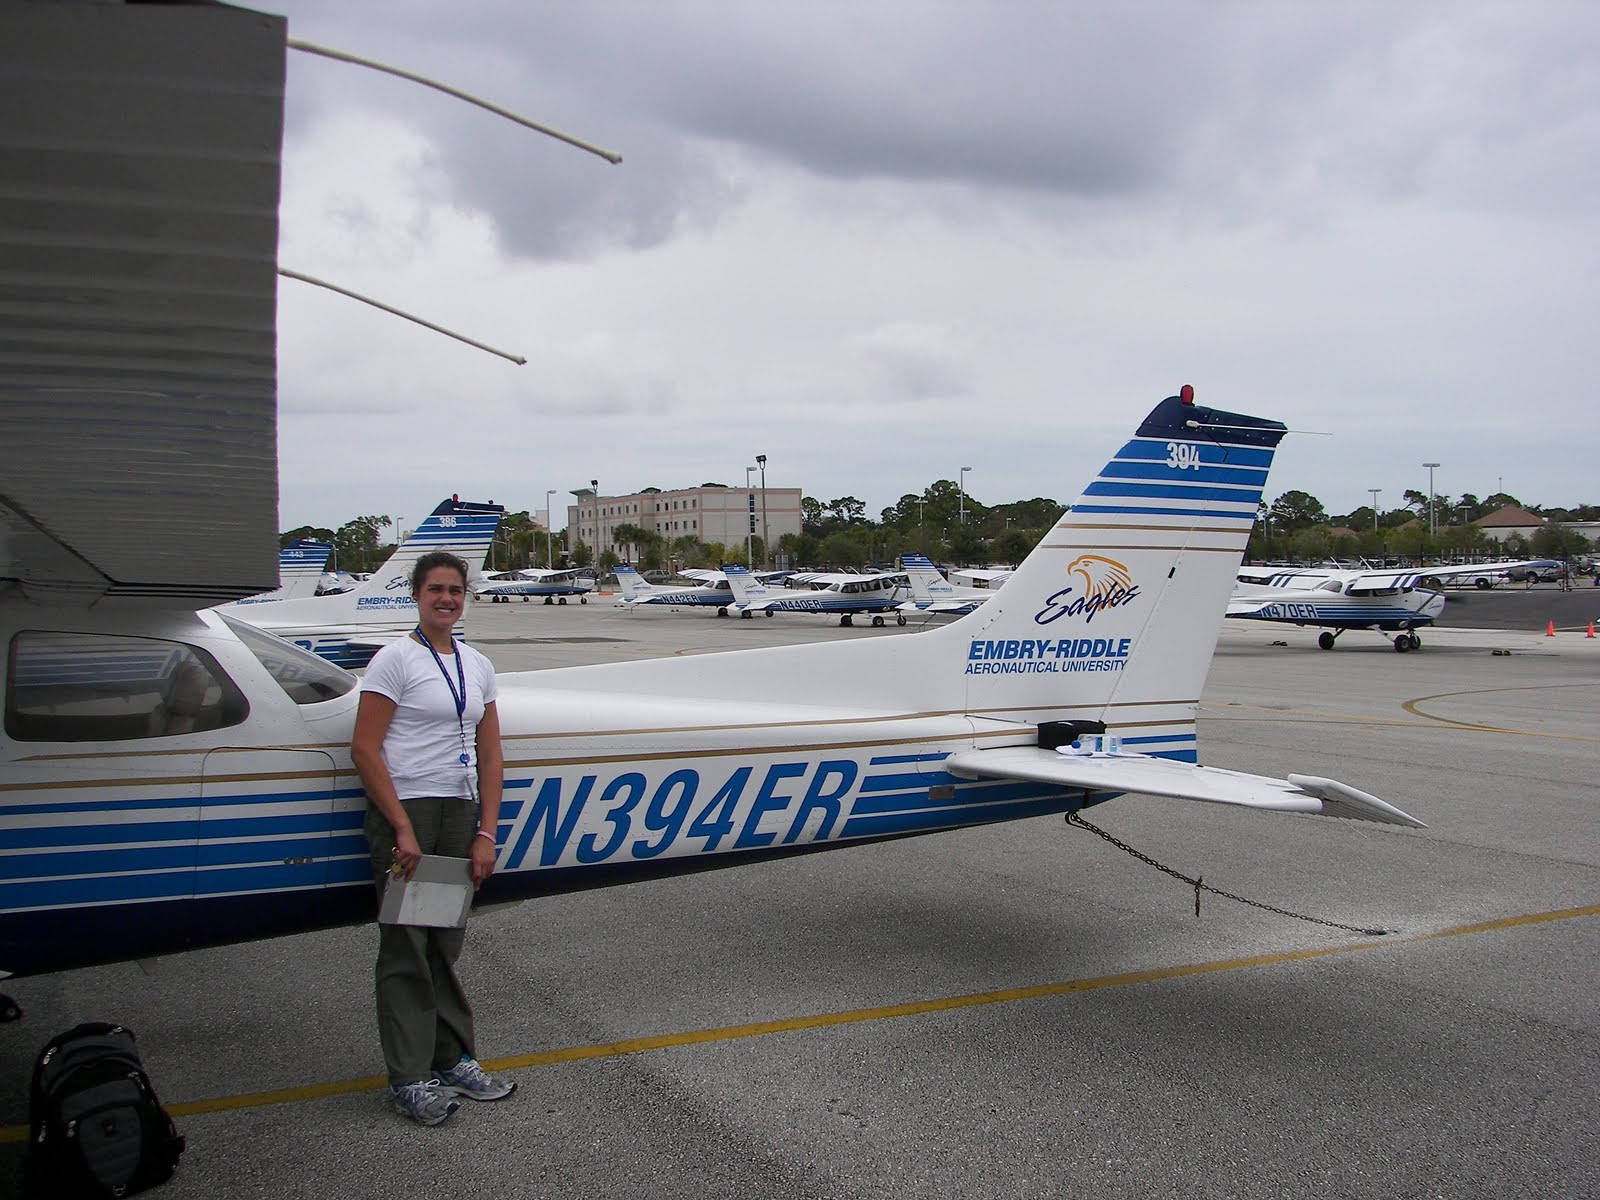 Flight To Success: Flying High with Embry-Riddle!